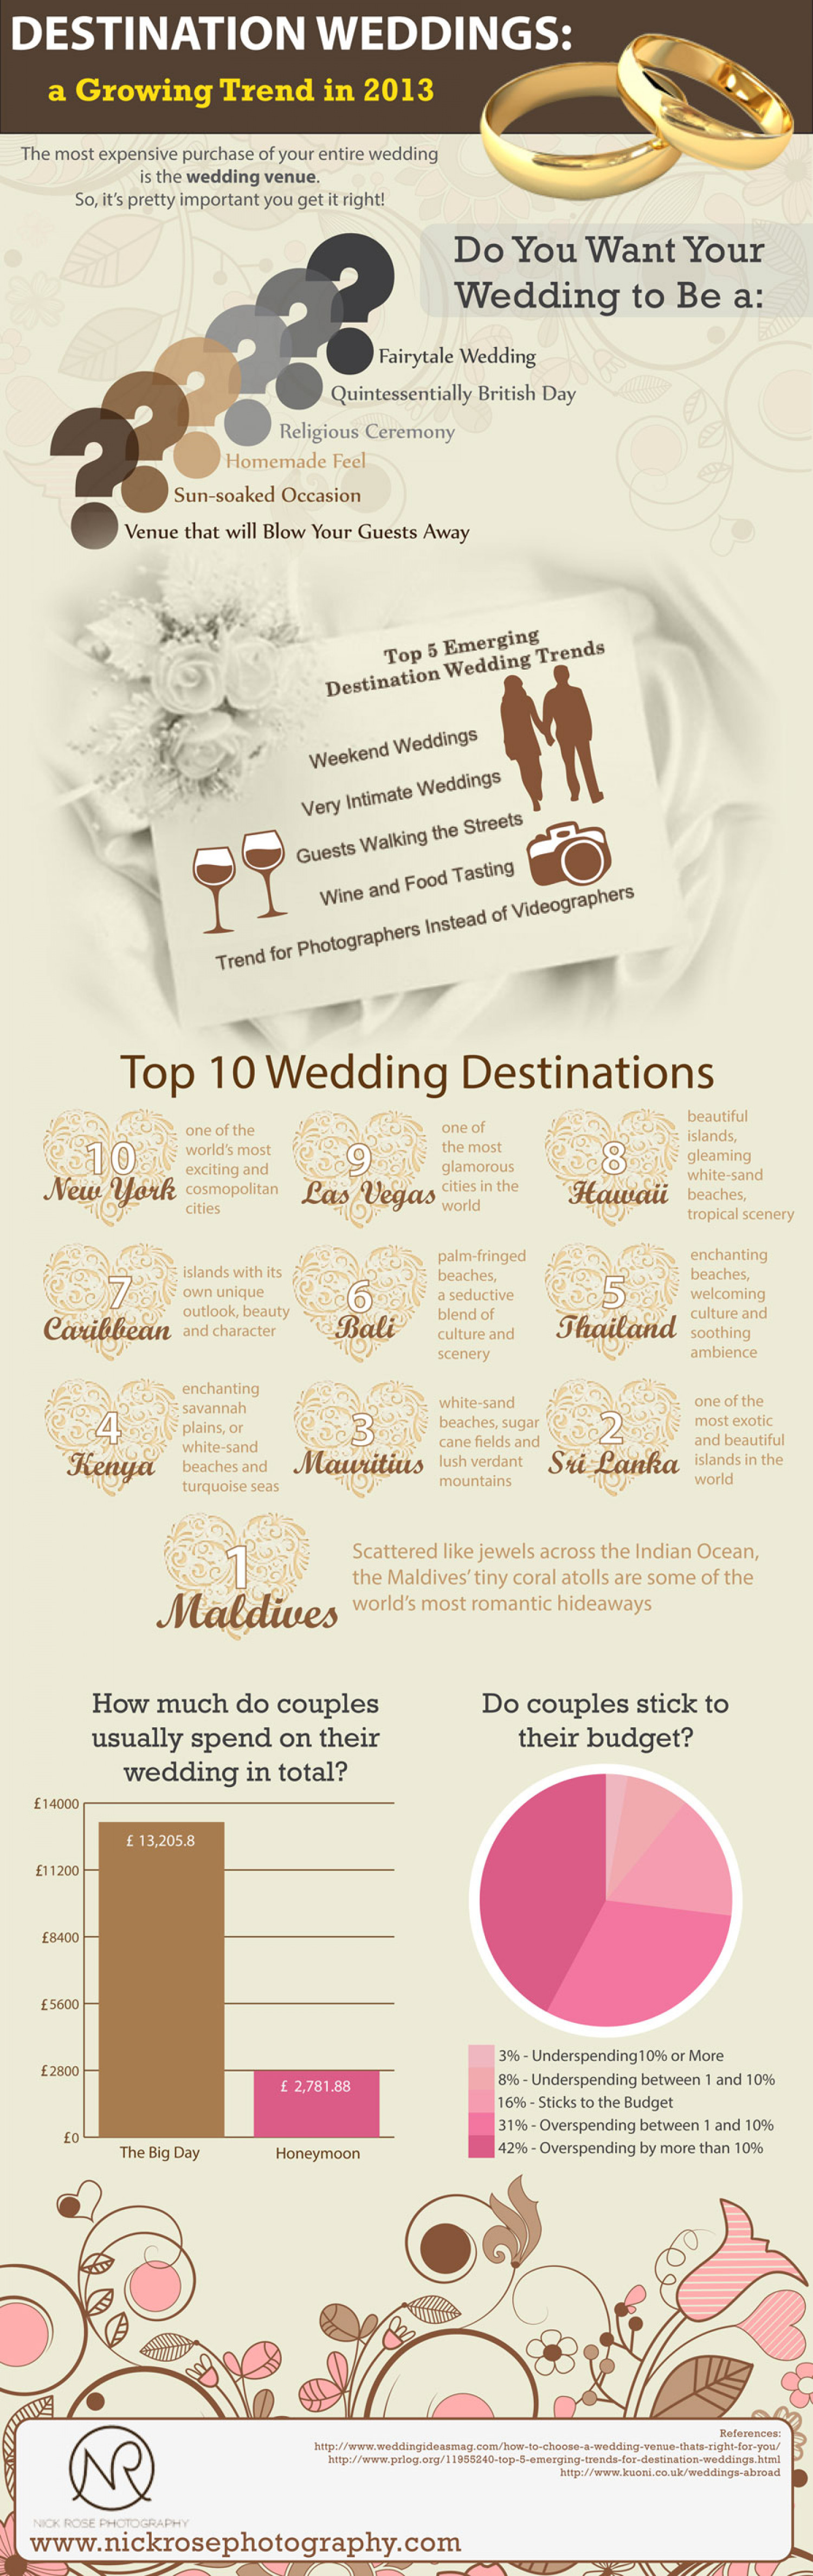 Destination Weddings: A Growing Trend in 2013 Infographic